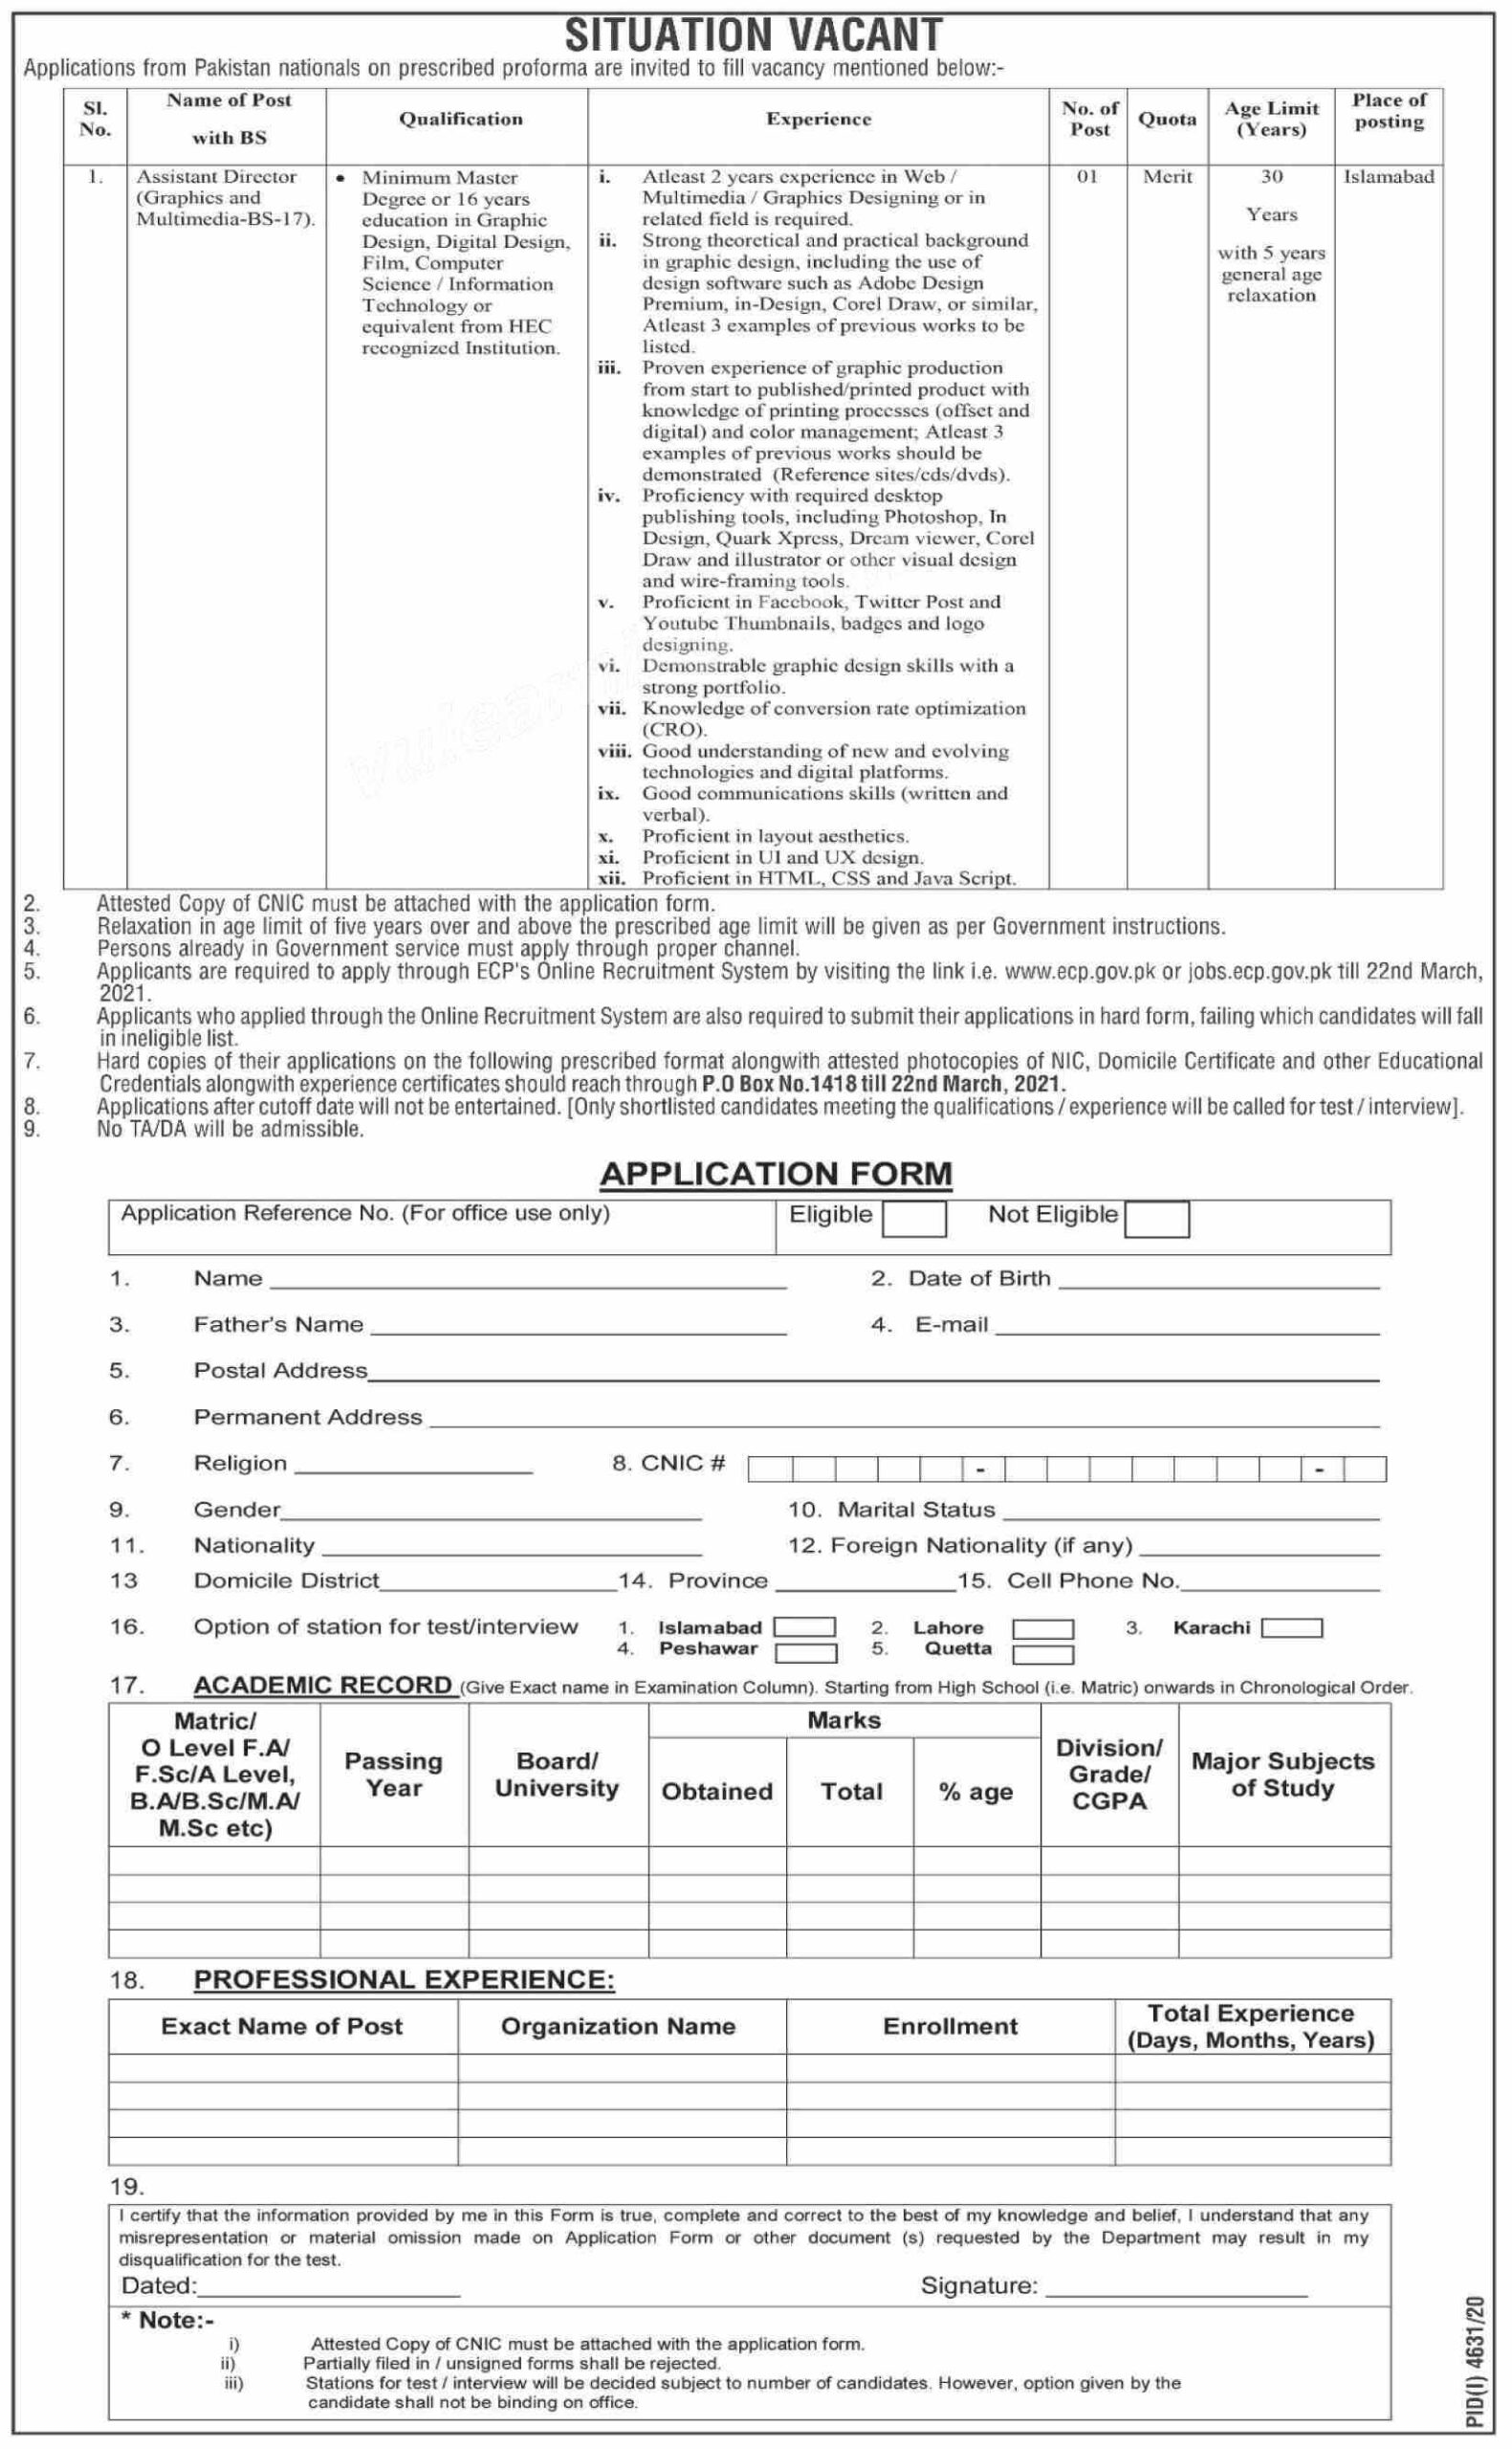 Election Commission of Pakistan (ECP) Islamabad Assistant Director Jobs 2021 Application Form